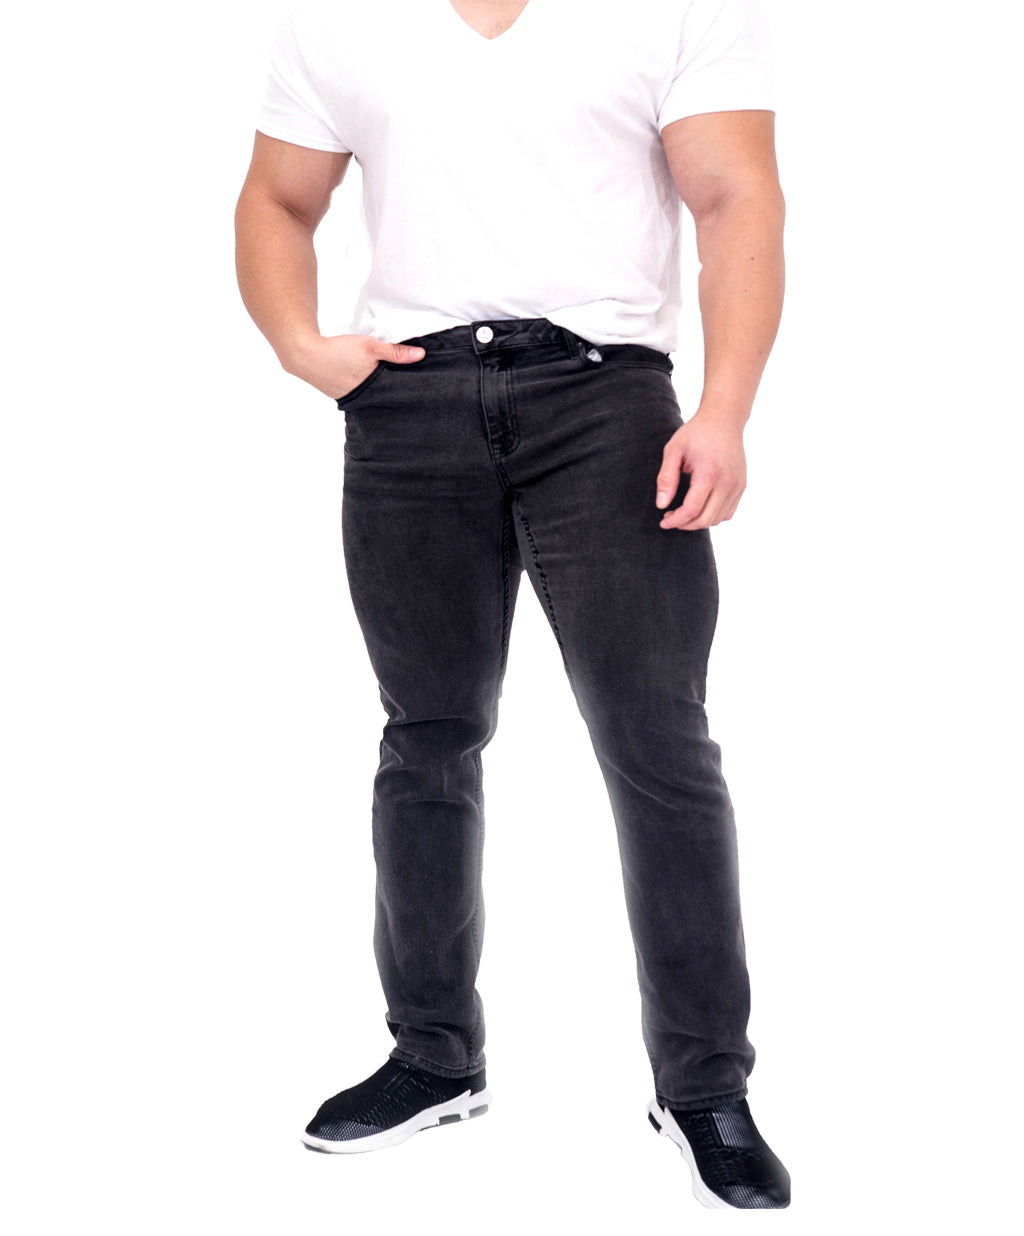 Men's Athletic Fit Jeans- Relaxed Leg - Fiorenzuola